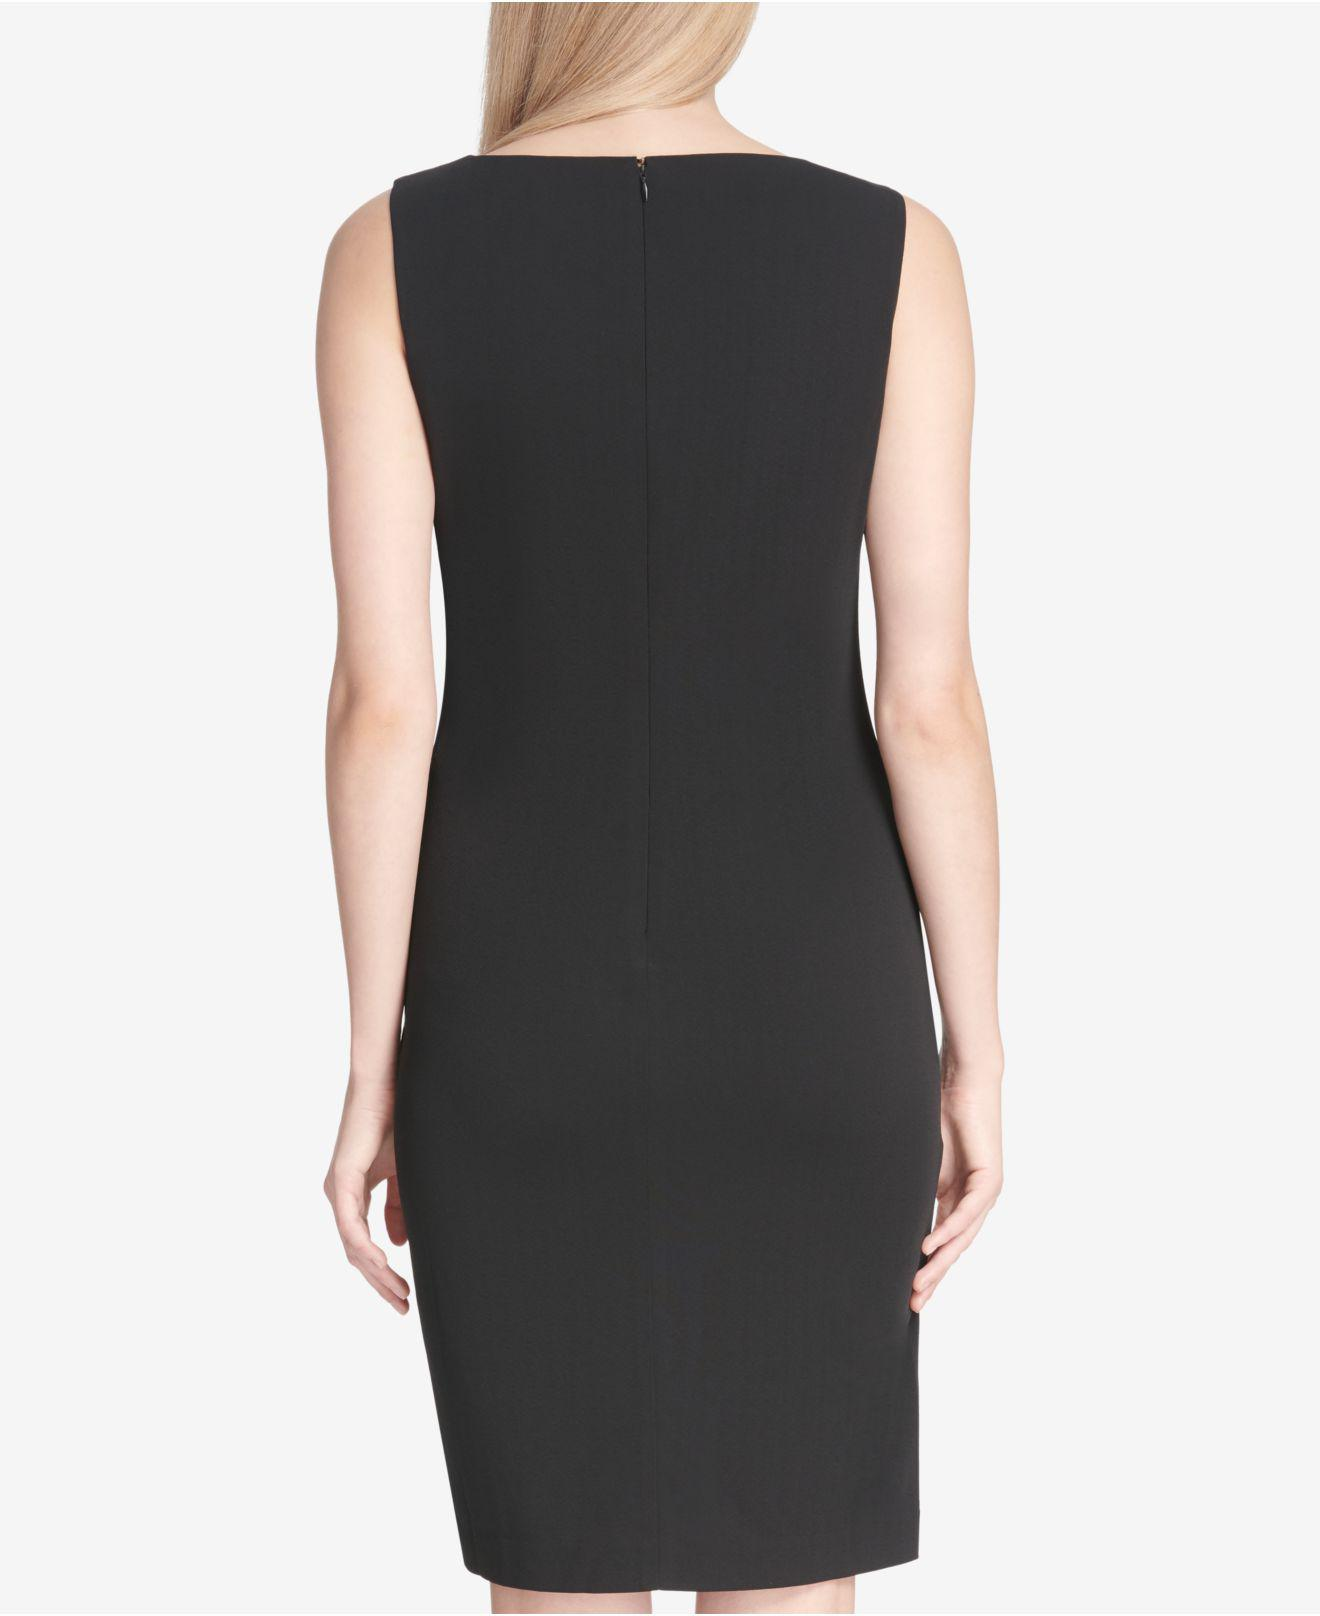 f508d2d1 Lyst - Calvin Klein Chain-detail Sleeveless Sheath Dress in Black